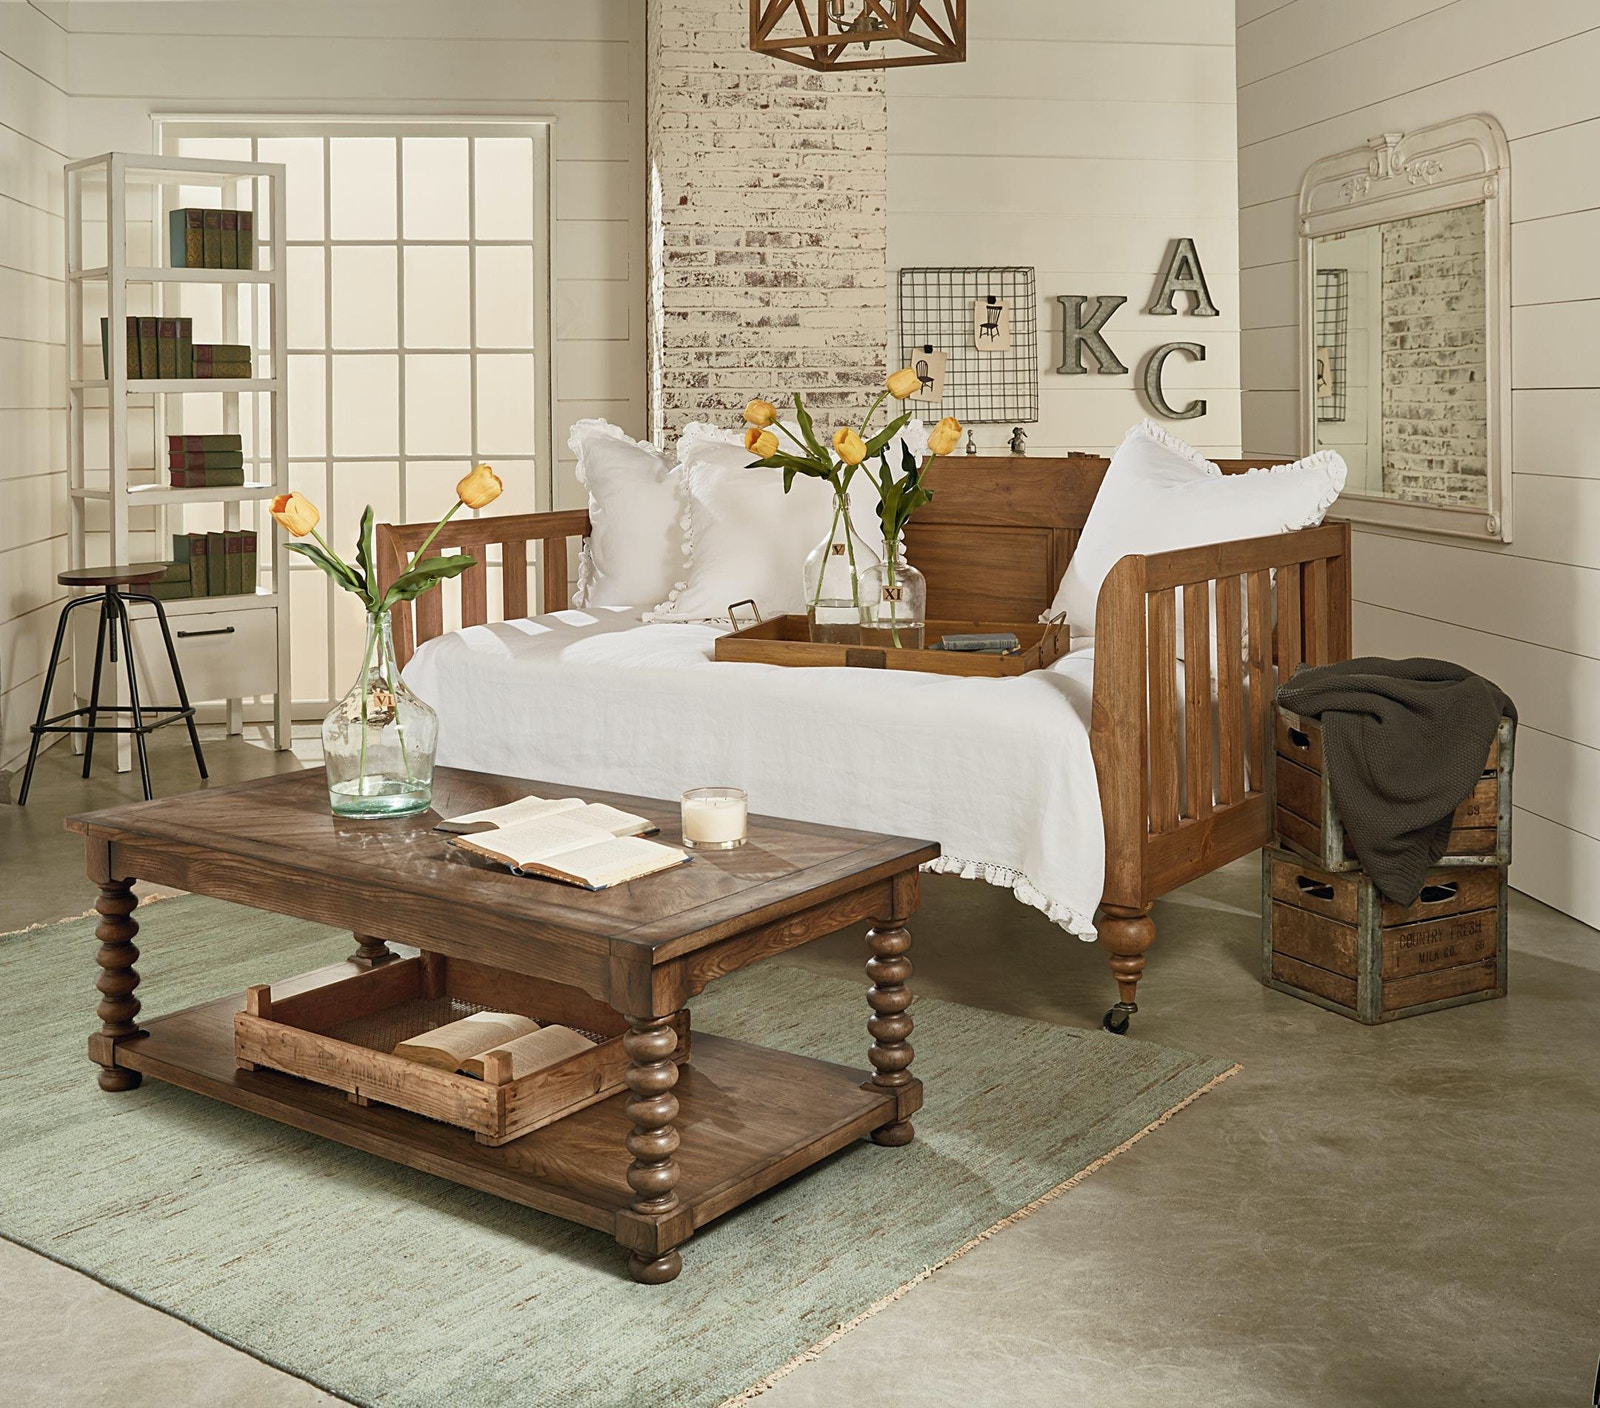 Magnolia Home Bedroom Primitive Elegance Daybed 051509 - Furniture Fair - Cincinnati u0026 Dayton OH ...